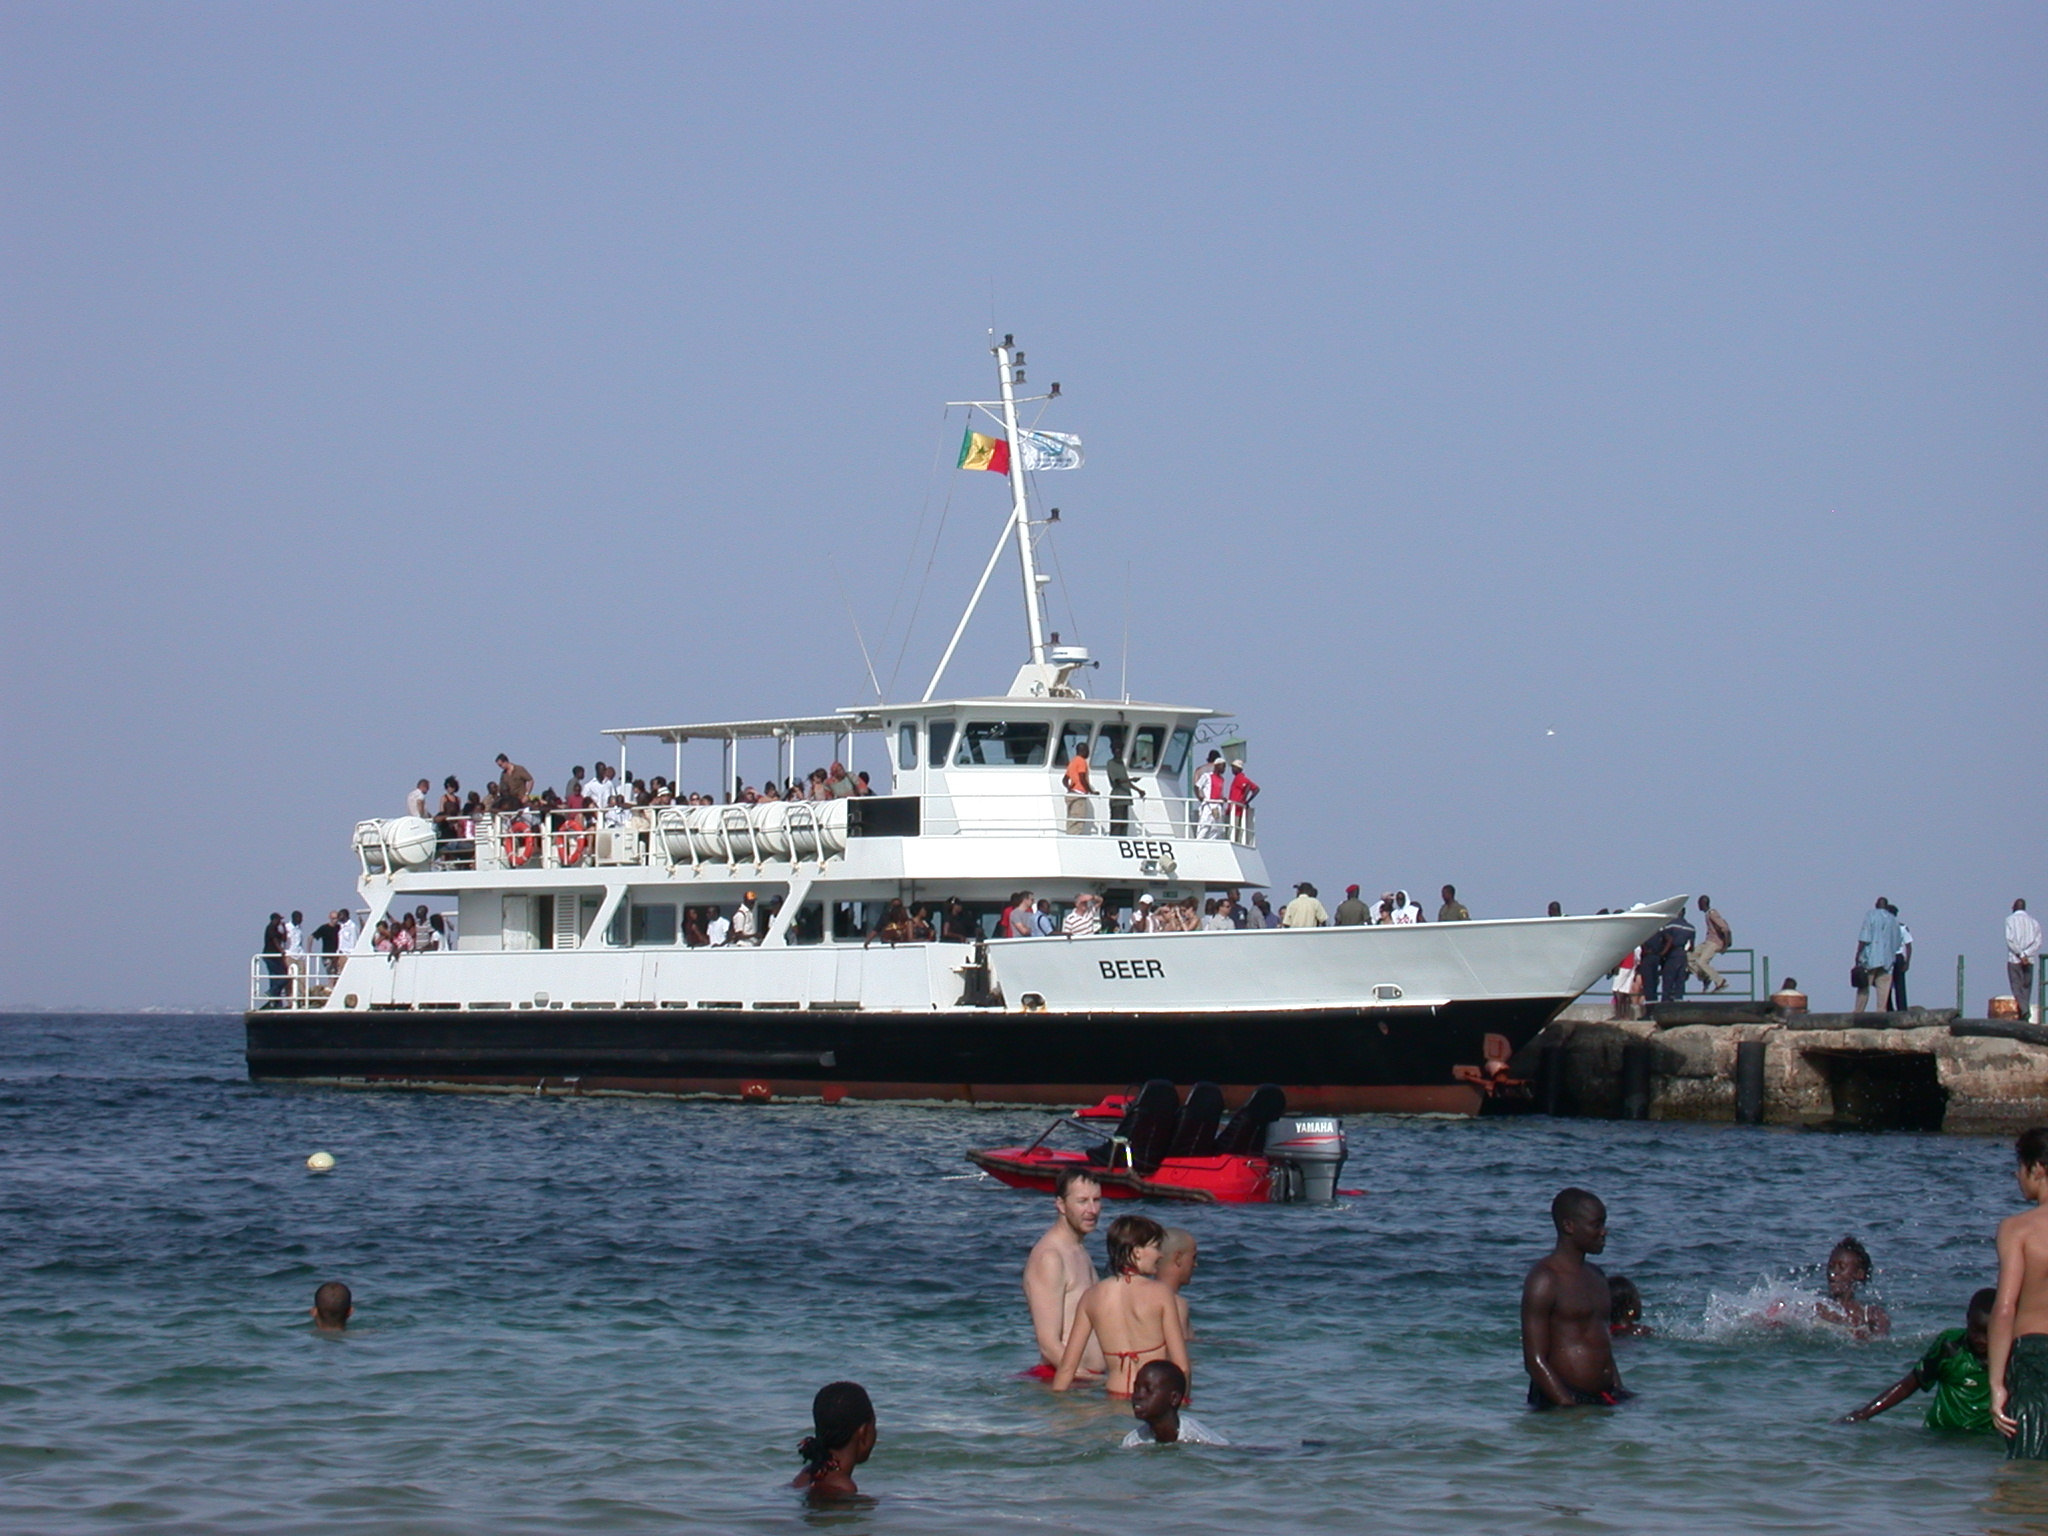 Beer Ferry Viewed From the Beach, Ile de Goree, Dakar, Senegal